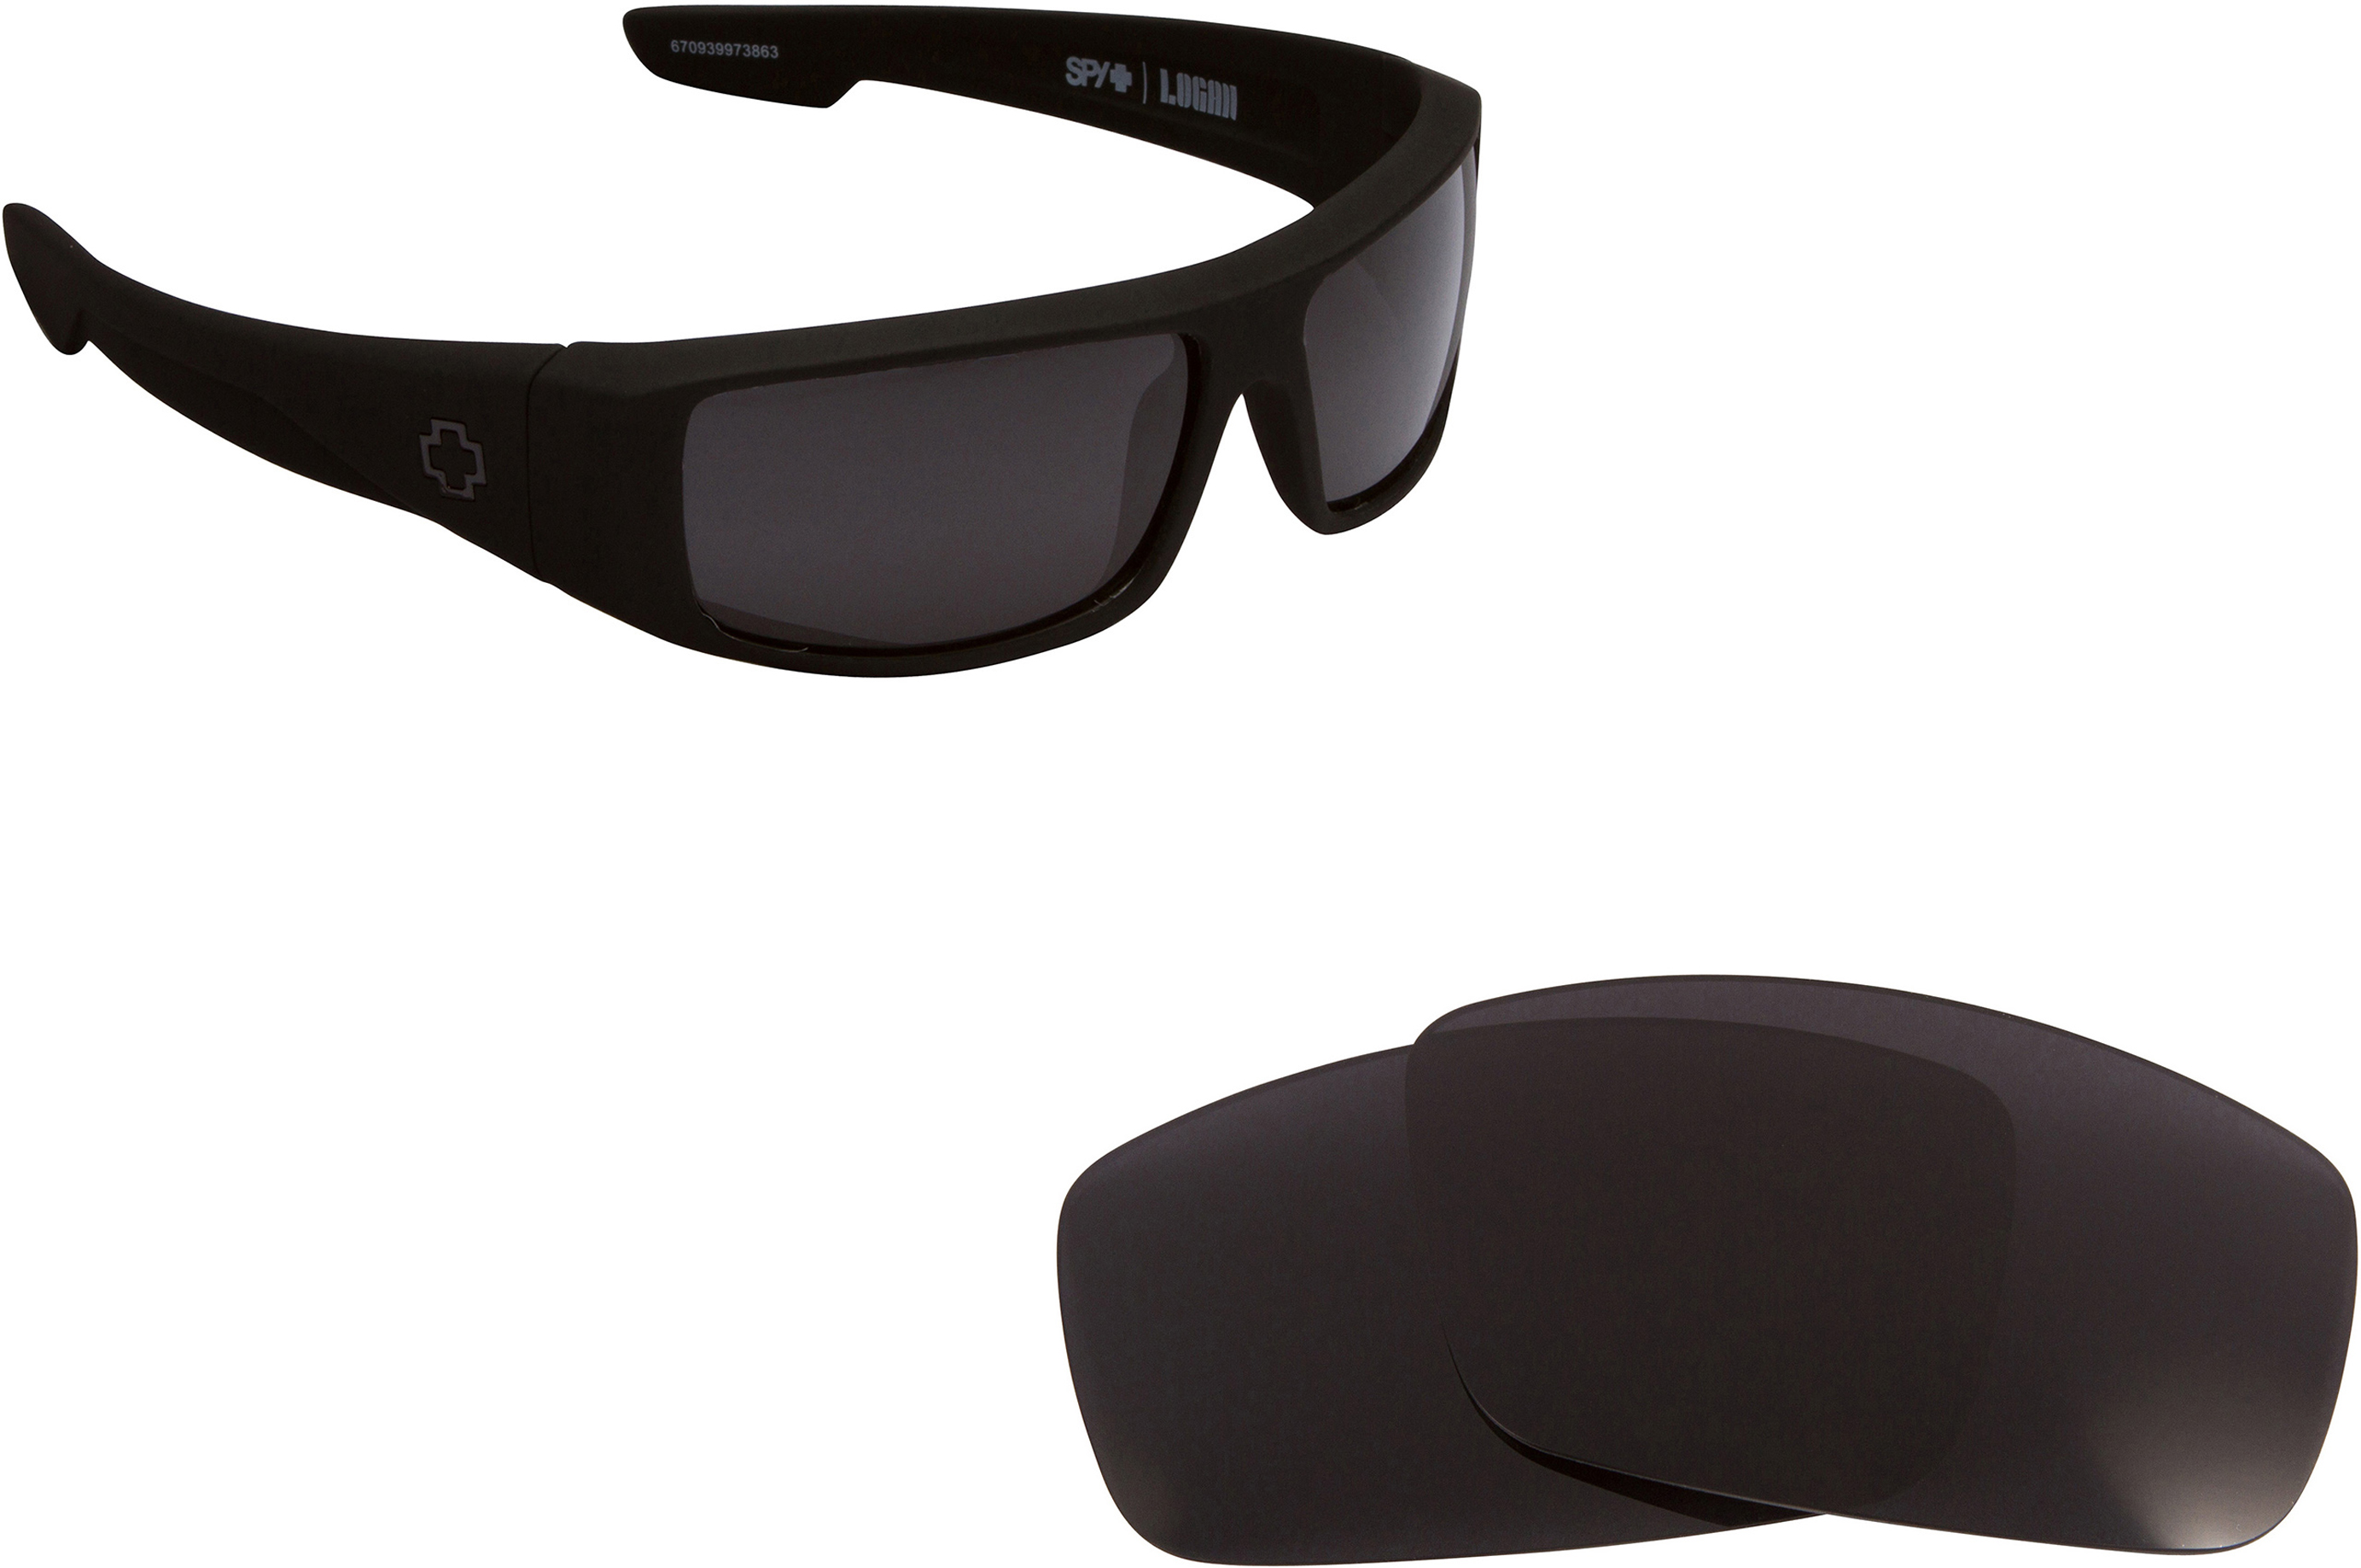 0897172abb4 LOGAN Replacement Lenses by SEEK OPTICS to fit SPY OPTICS Sunglasses ...